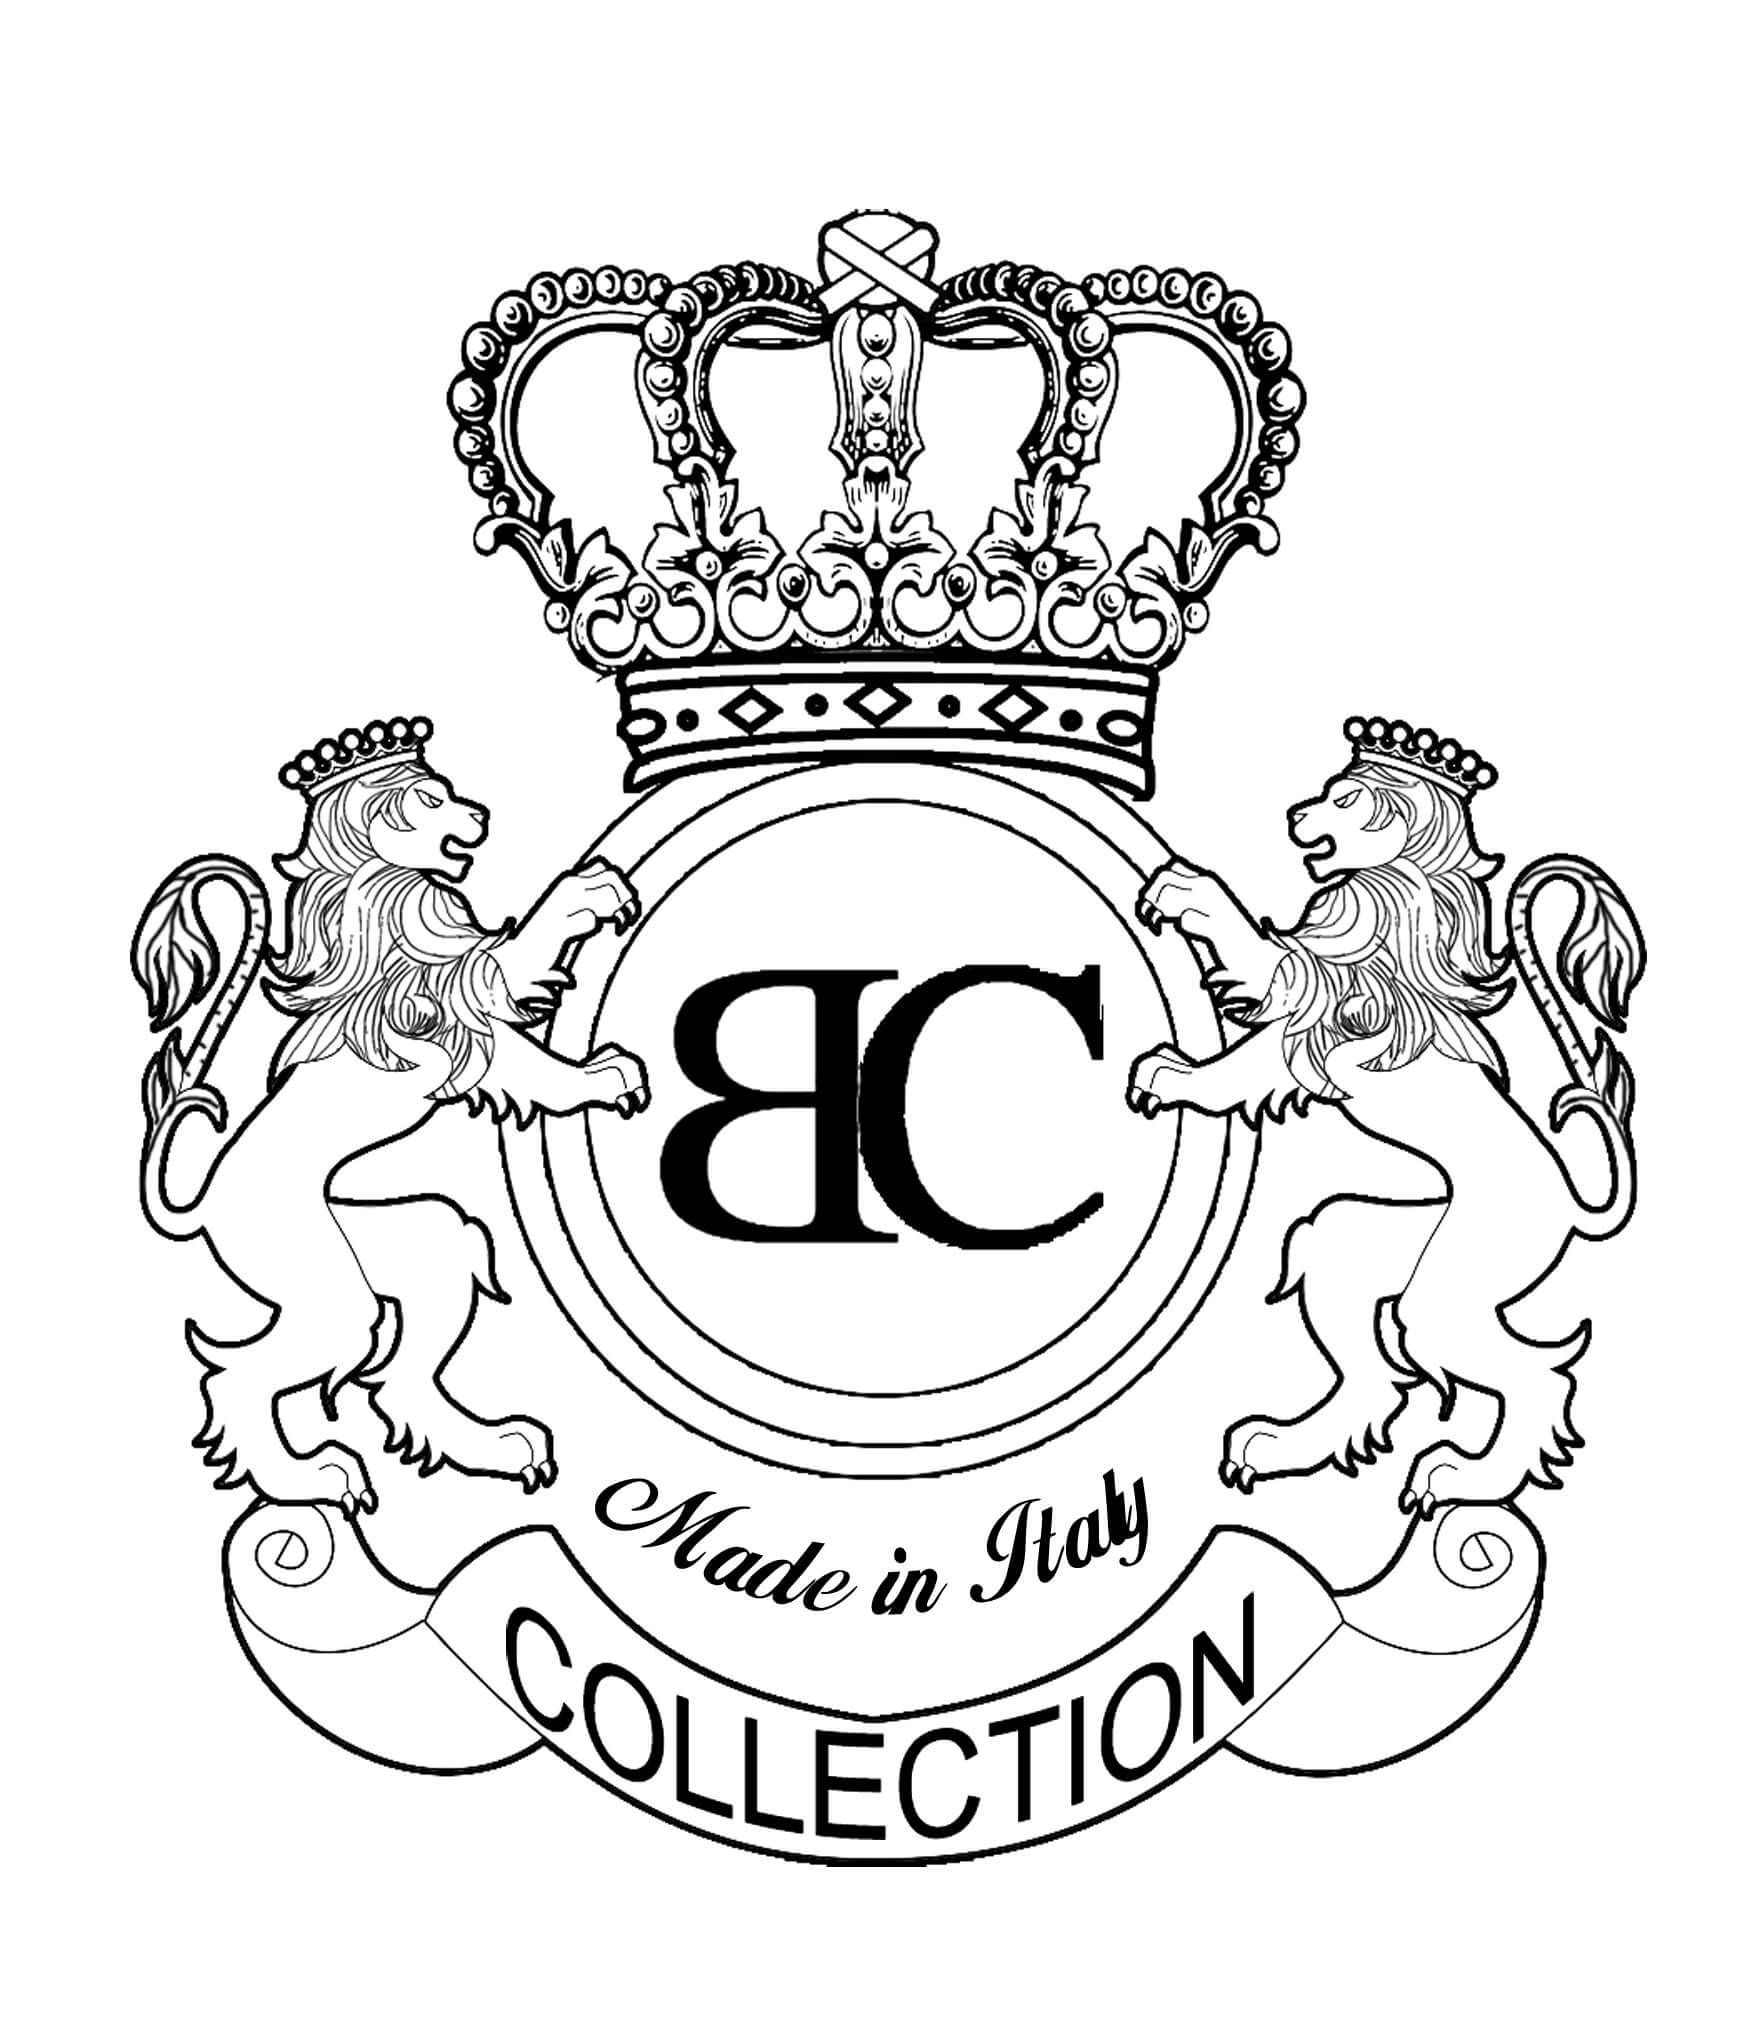 BC COLLECTION